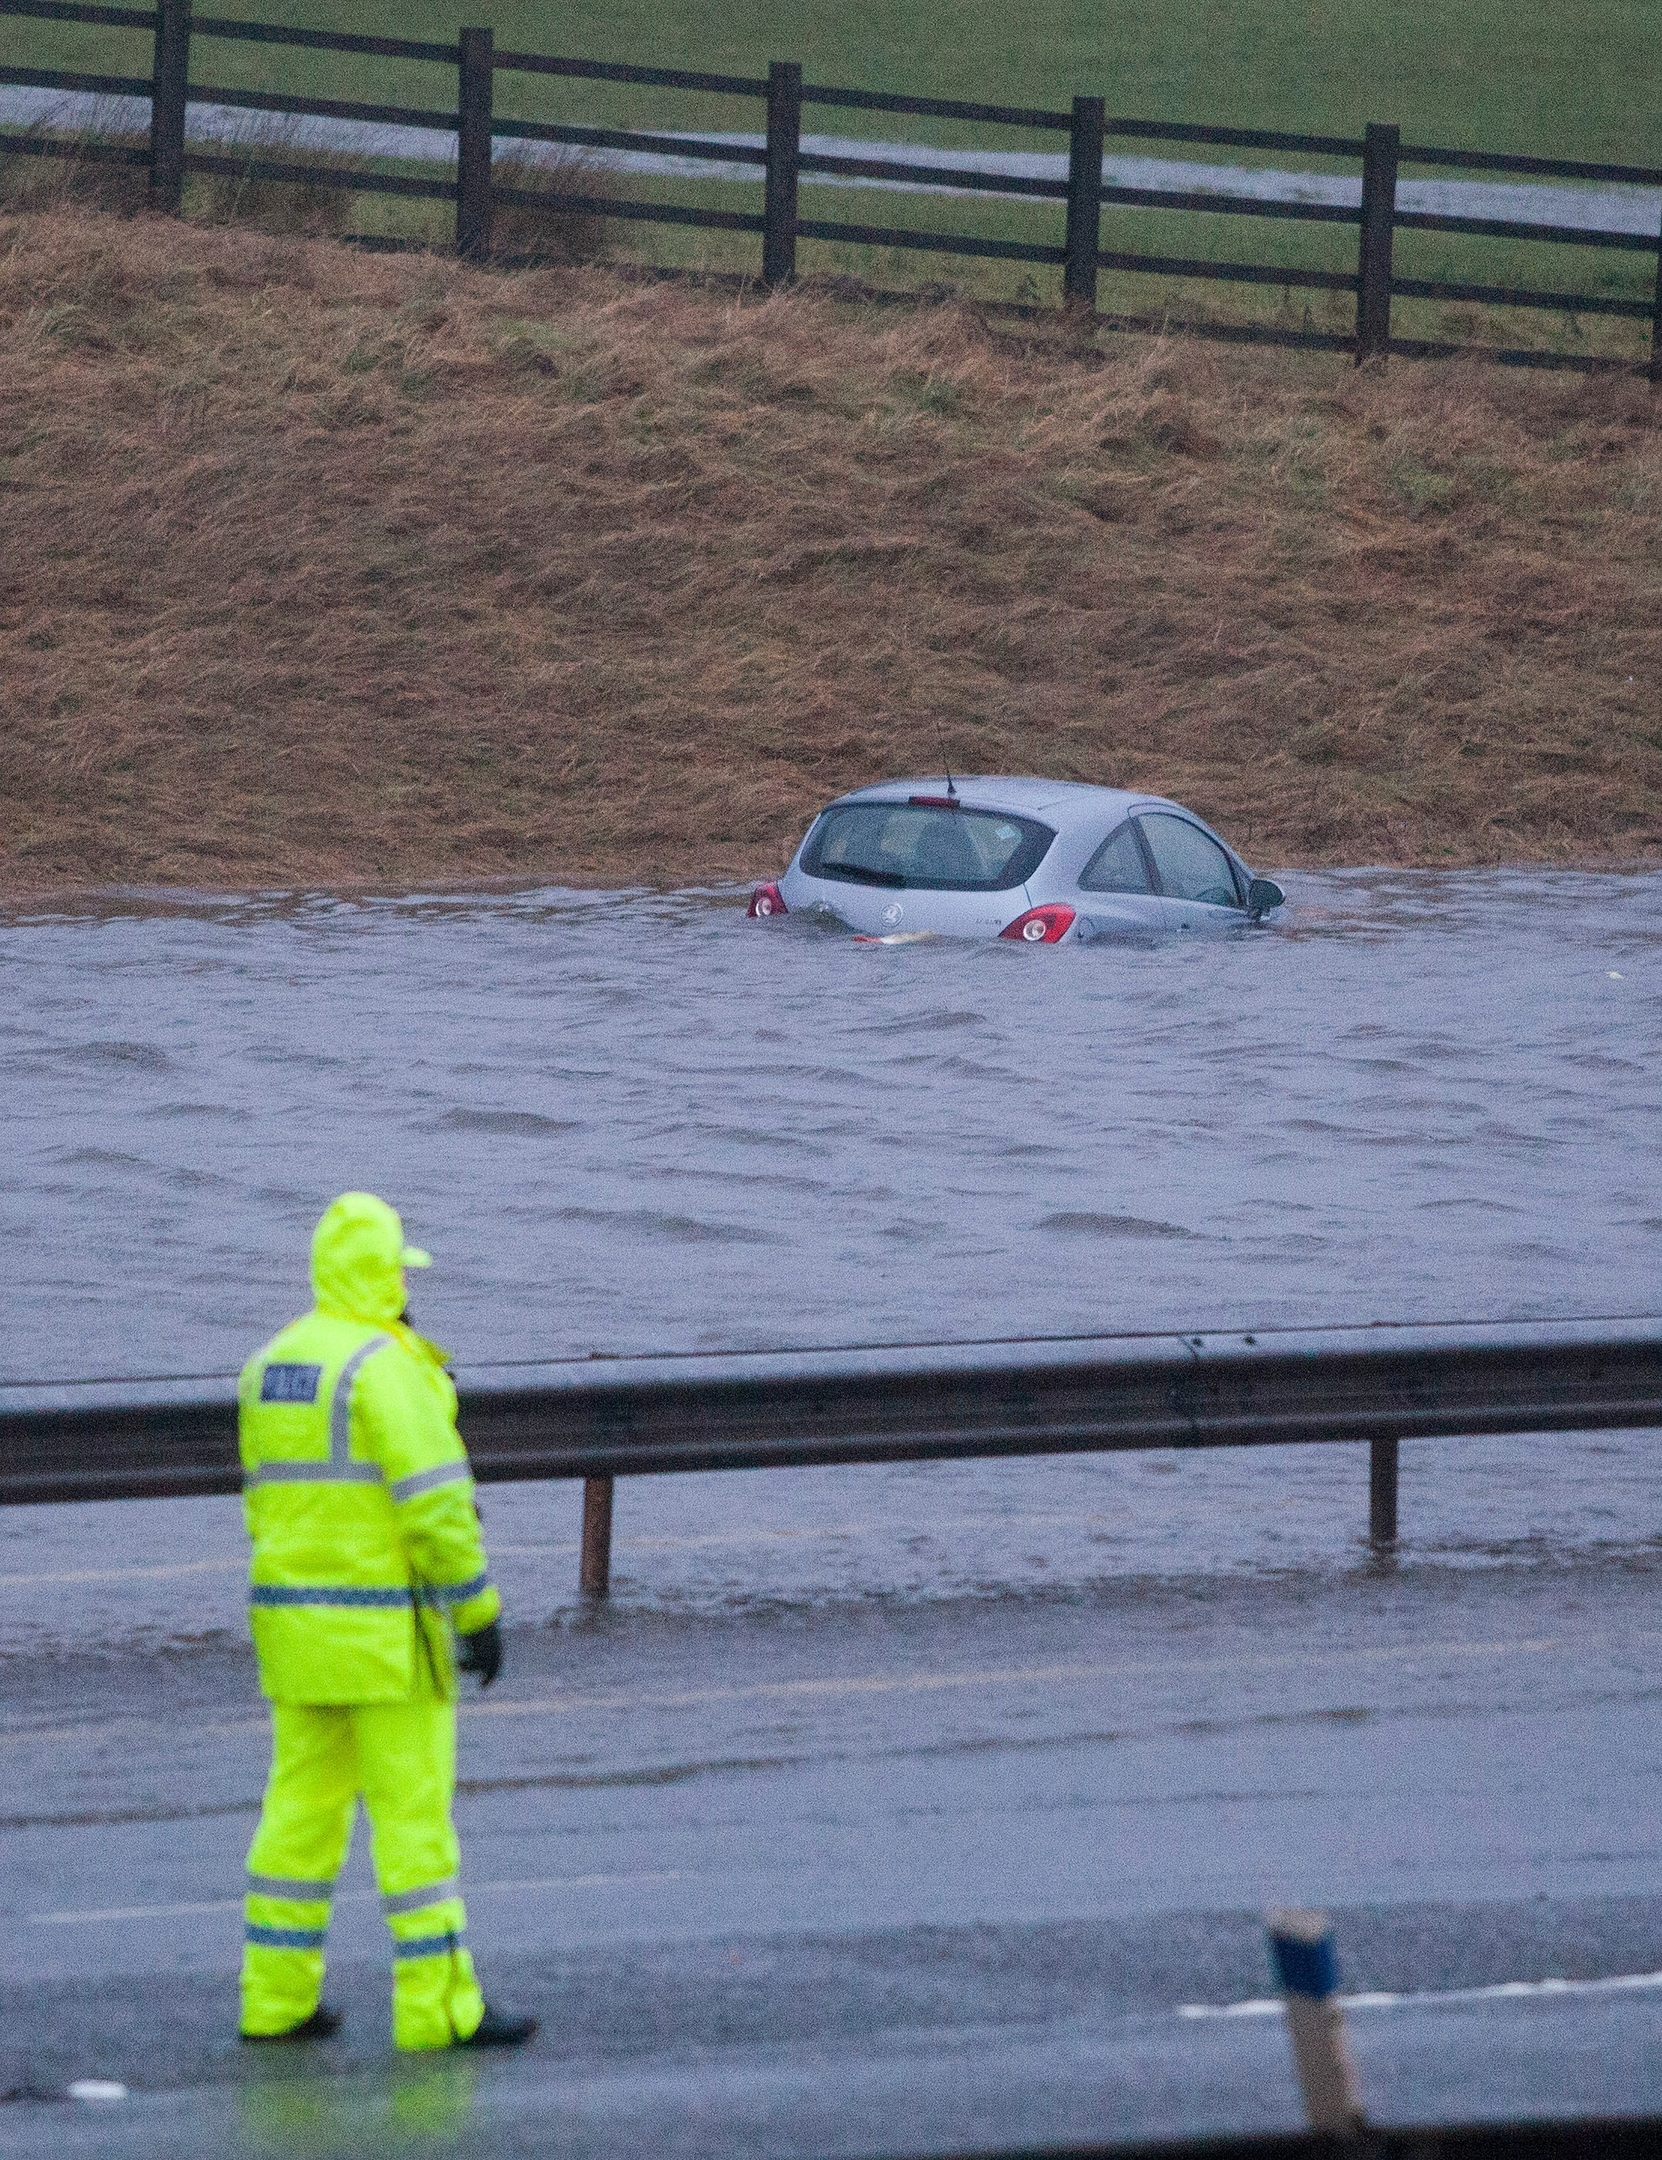 M74 northbound at J13 Abington is closed due to flooding caused by Storm Frank. Vehicles are seen floating in water and lorries pass with care. Dec 30 2015